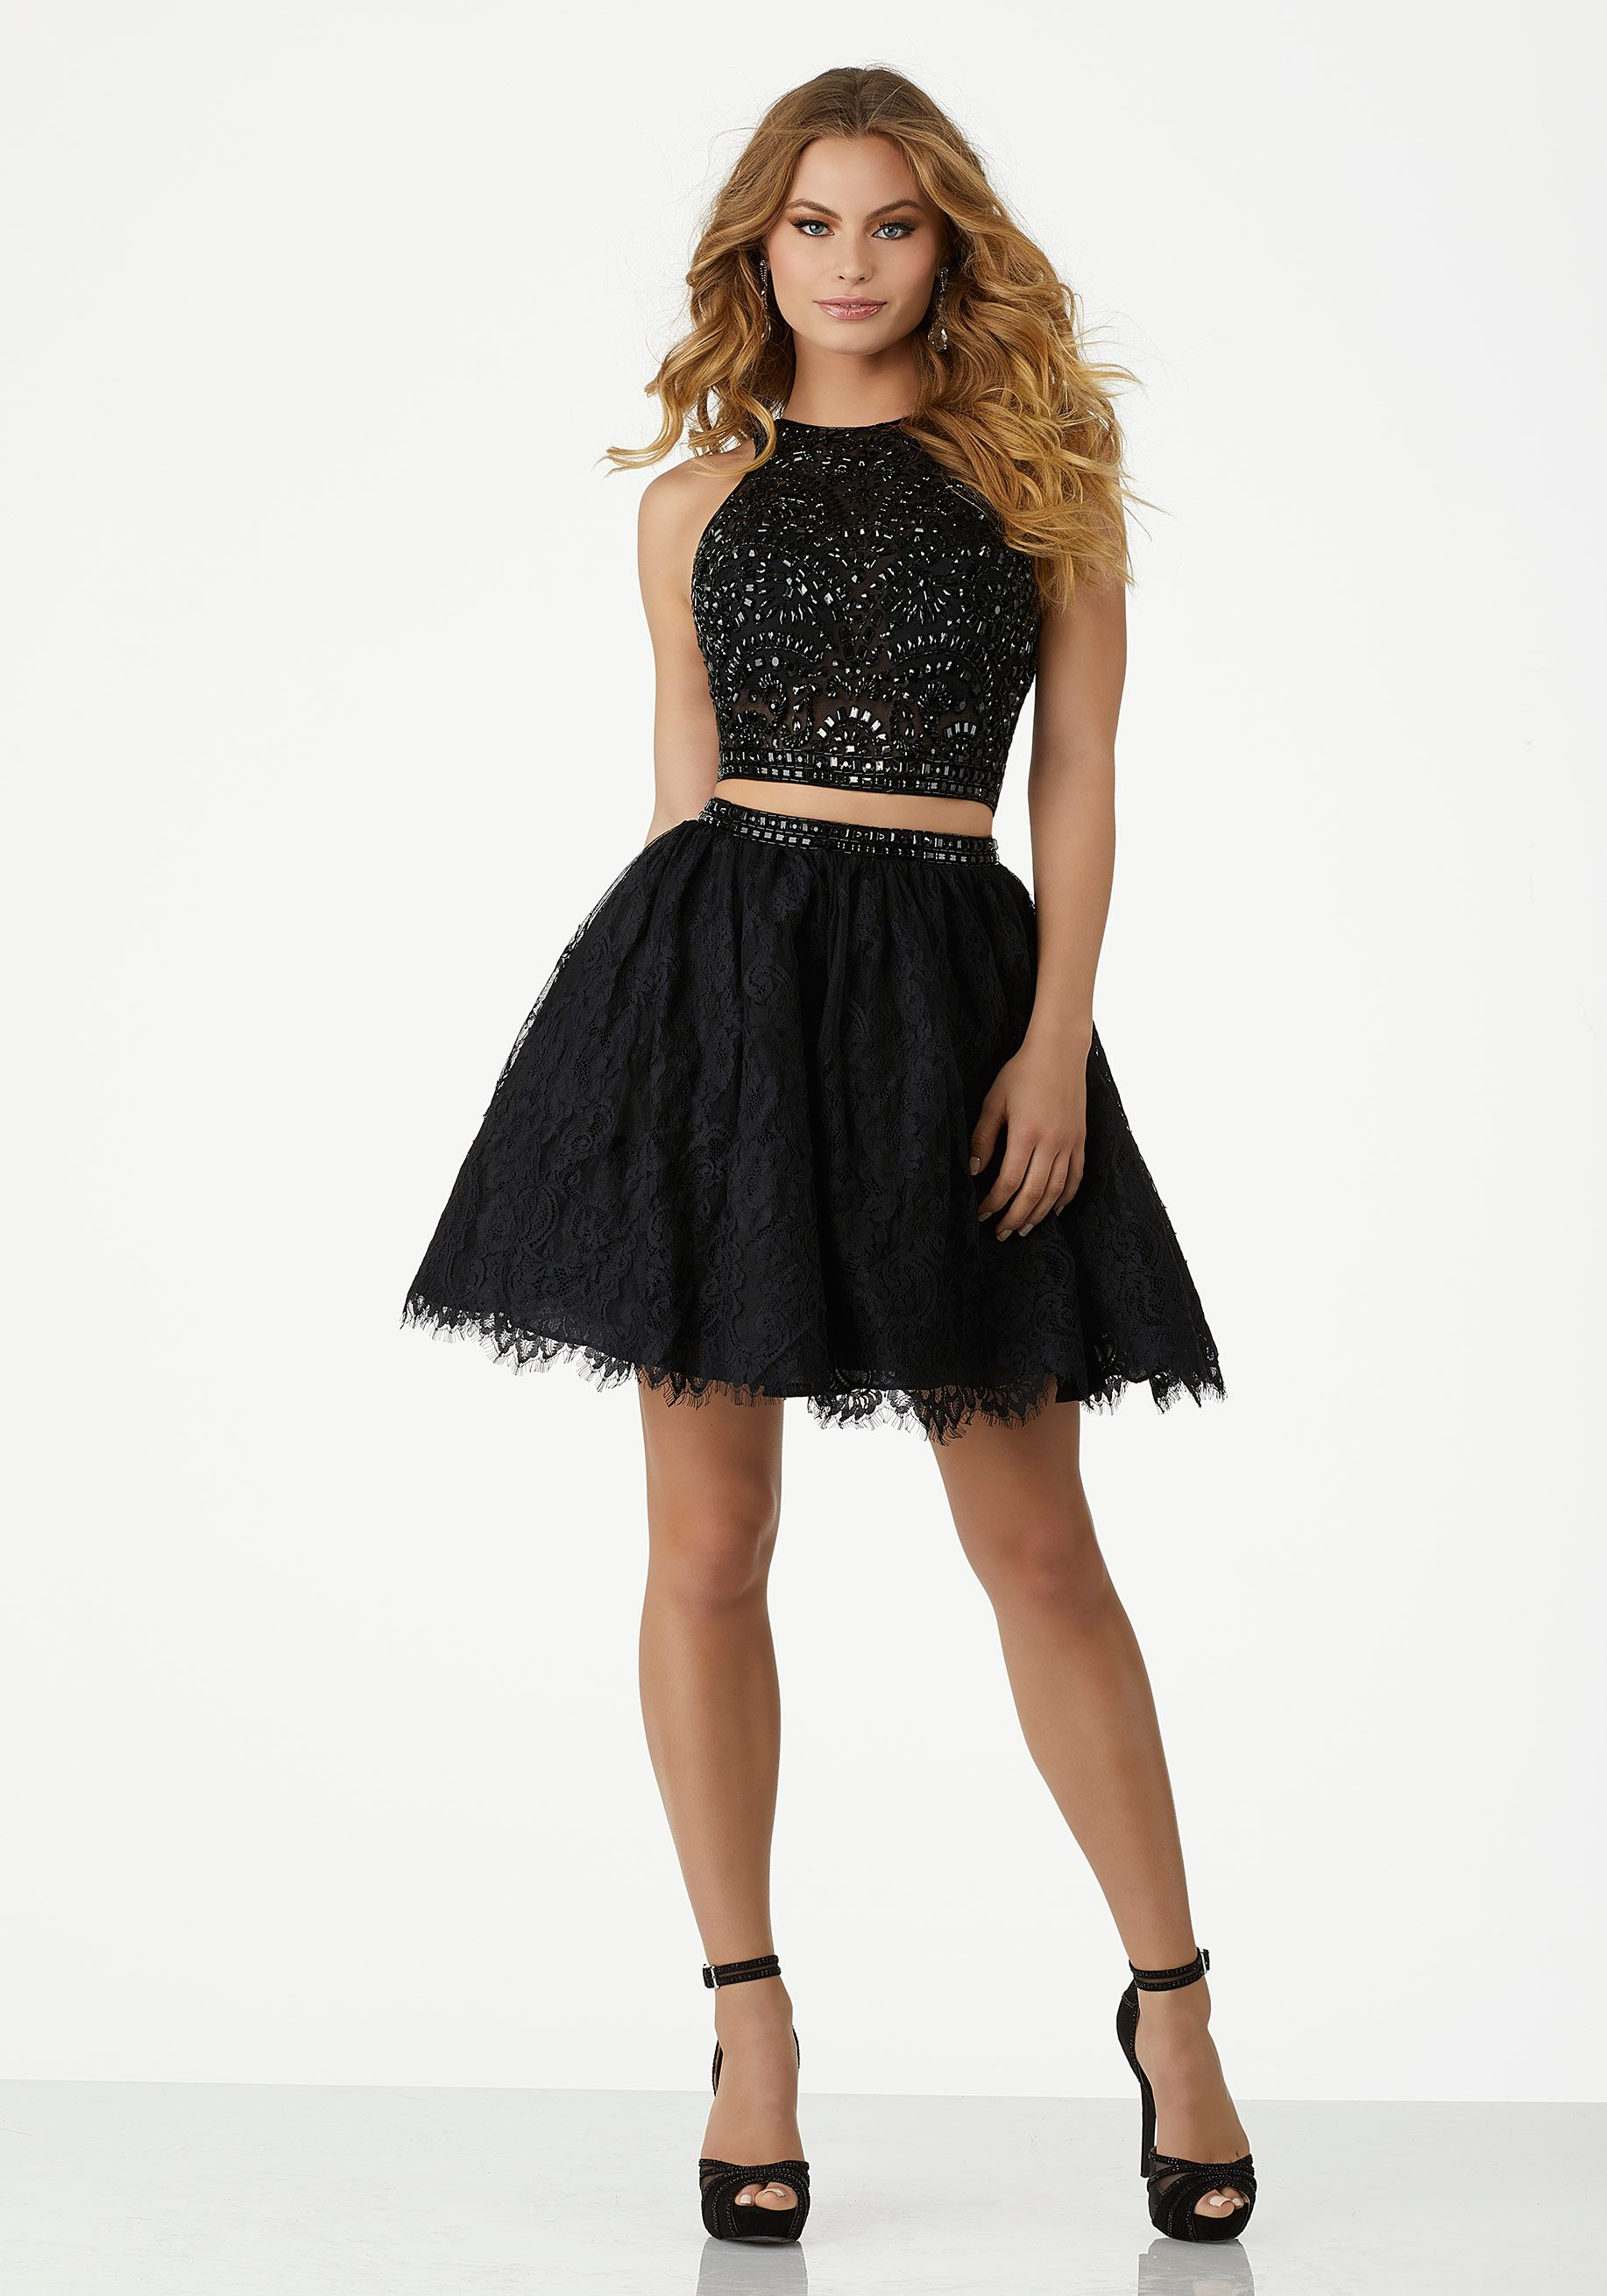 Prom & Club Dress Styles | Pinterest | Club dresses, Caviar and Neckline